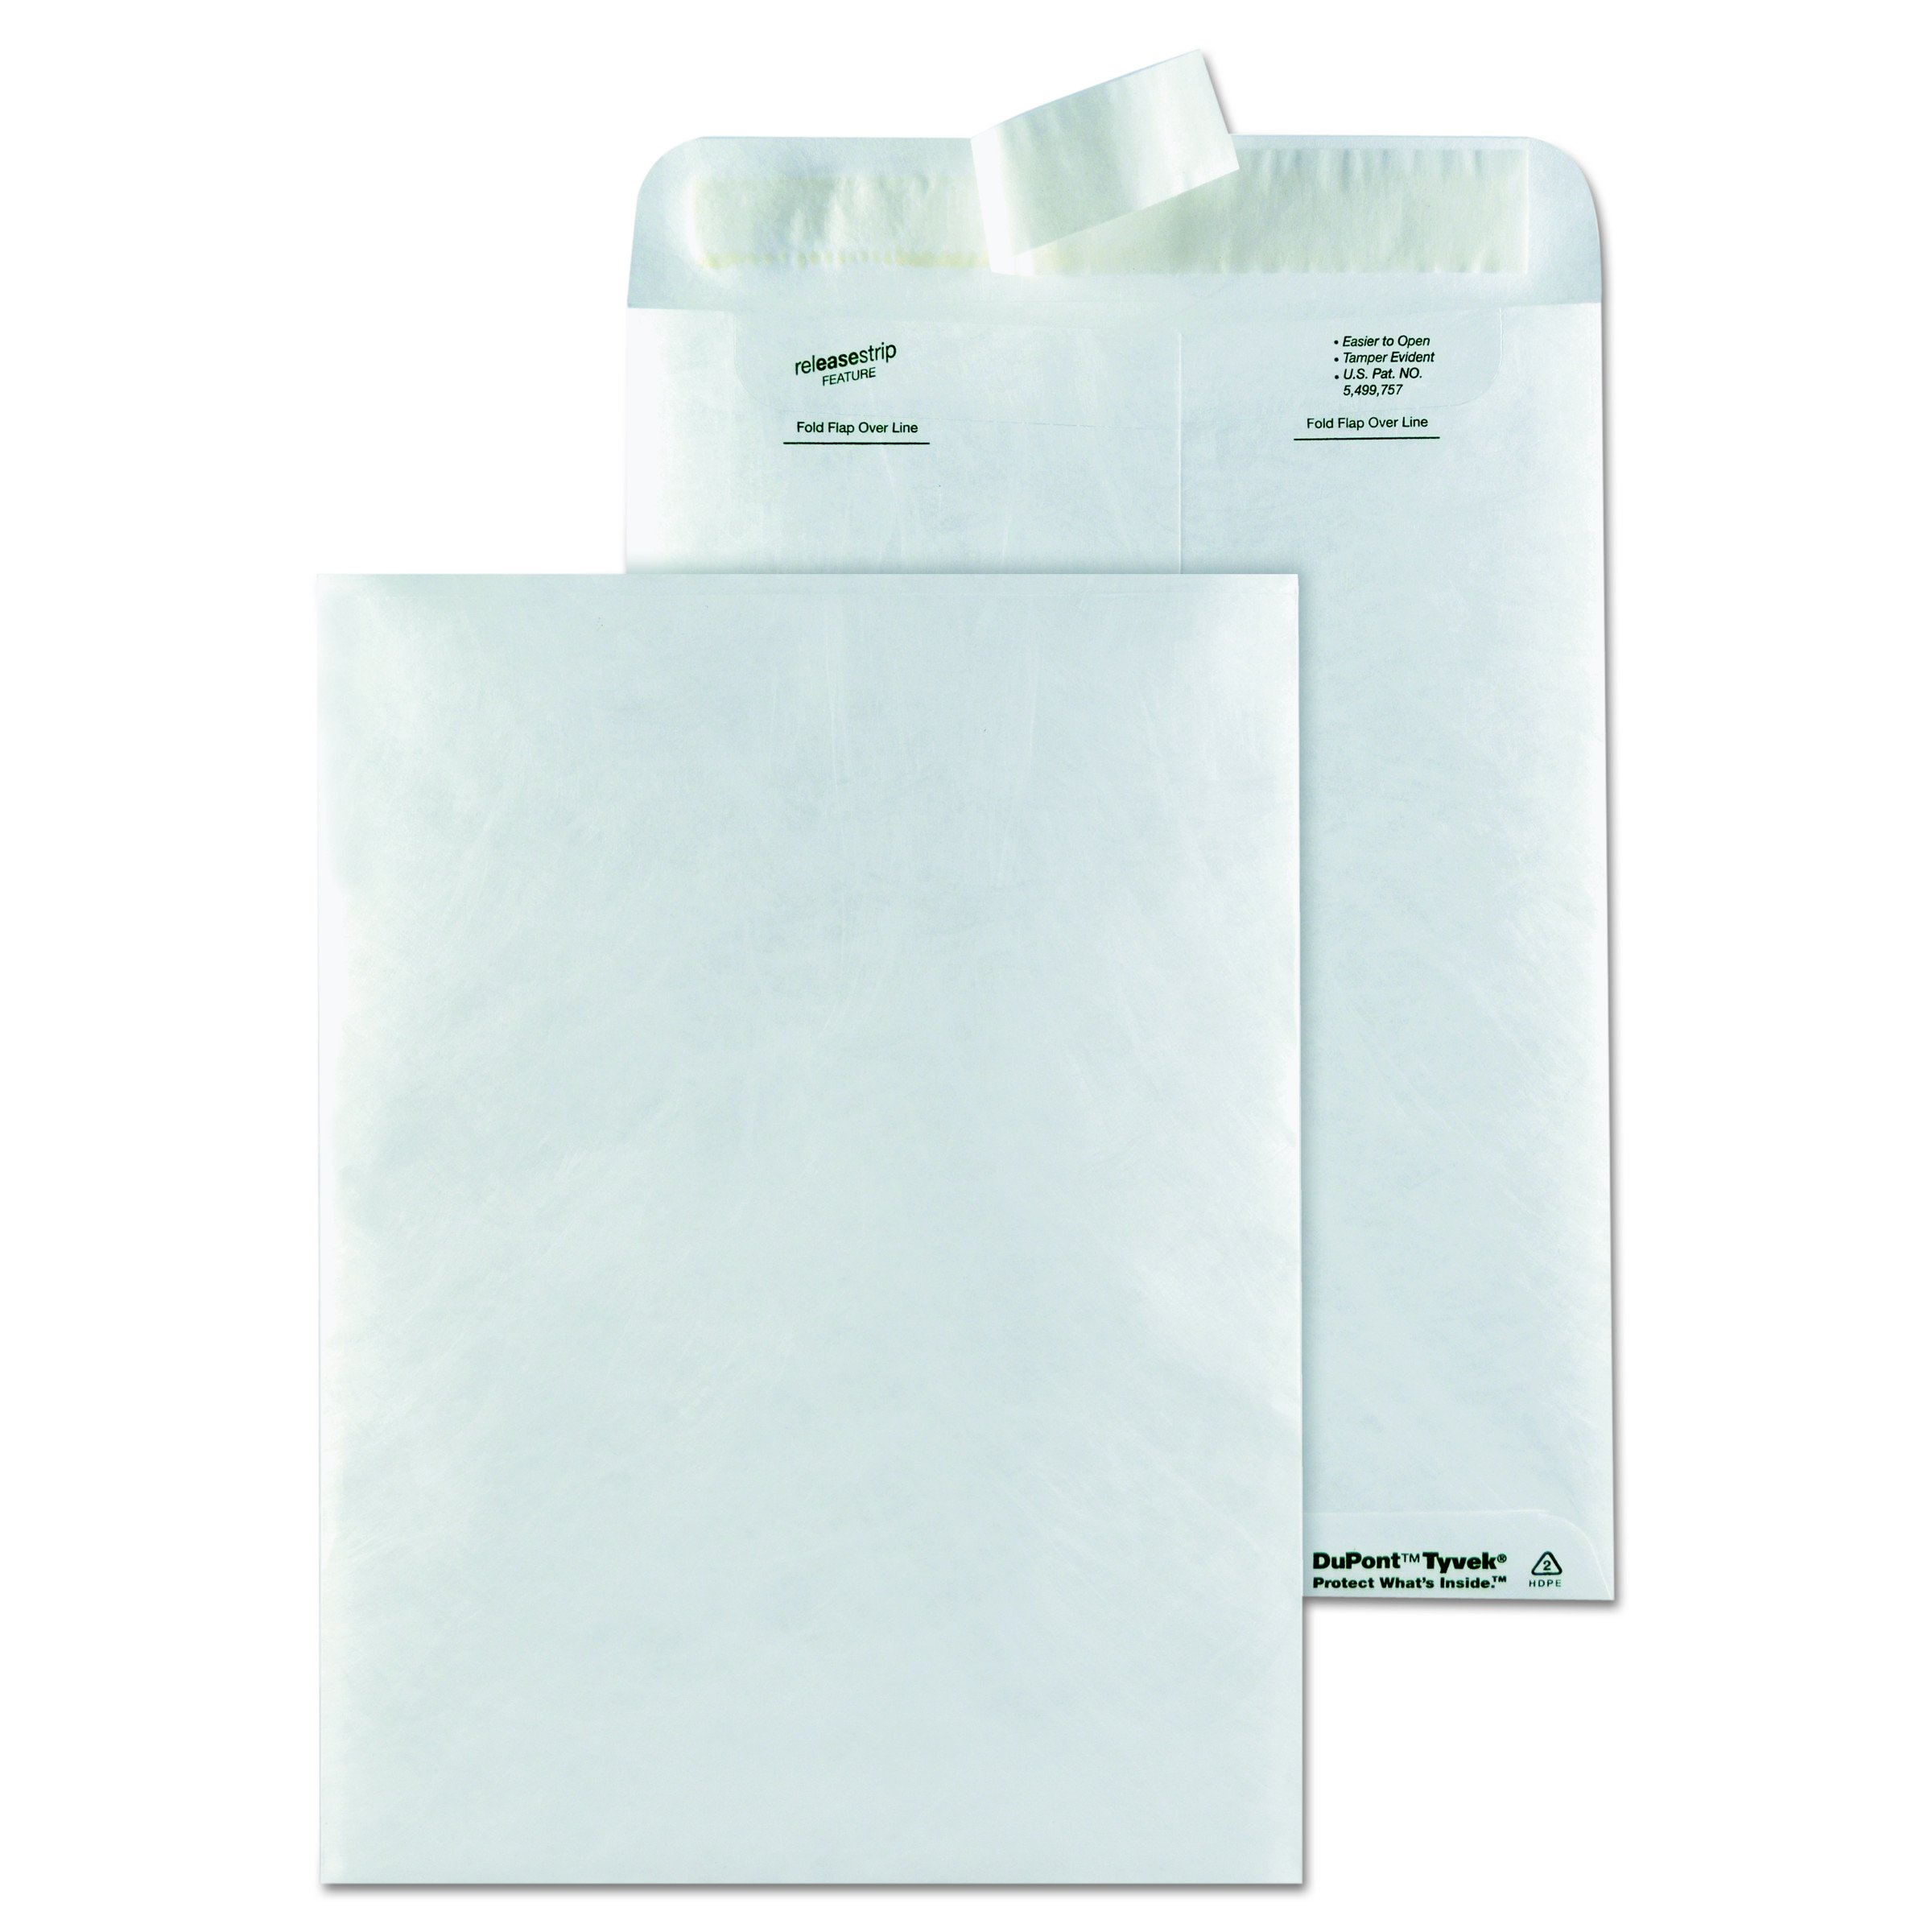 Quality Park 9x12 Envelopes, White, Box of 50 (R1462)